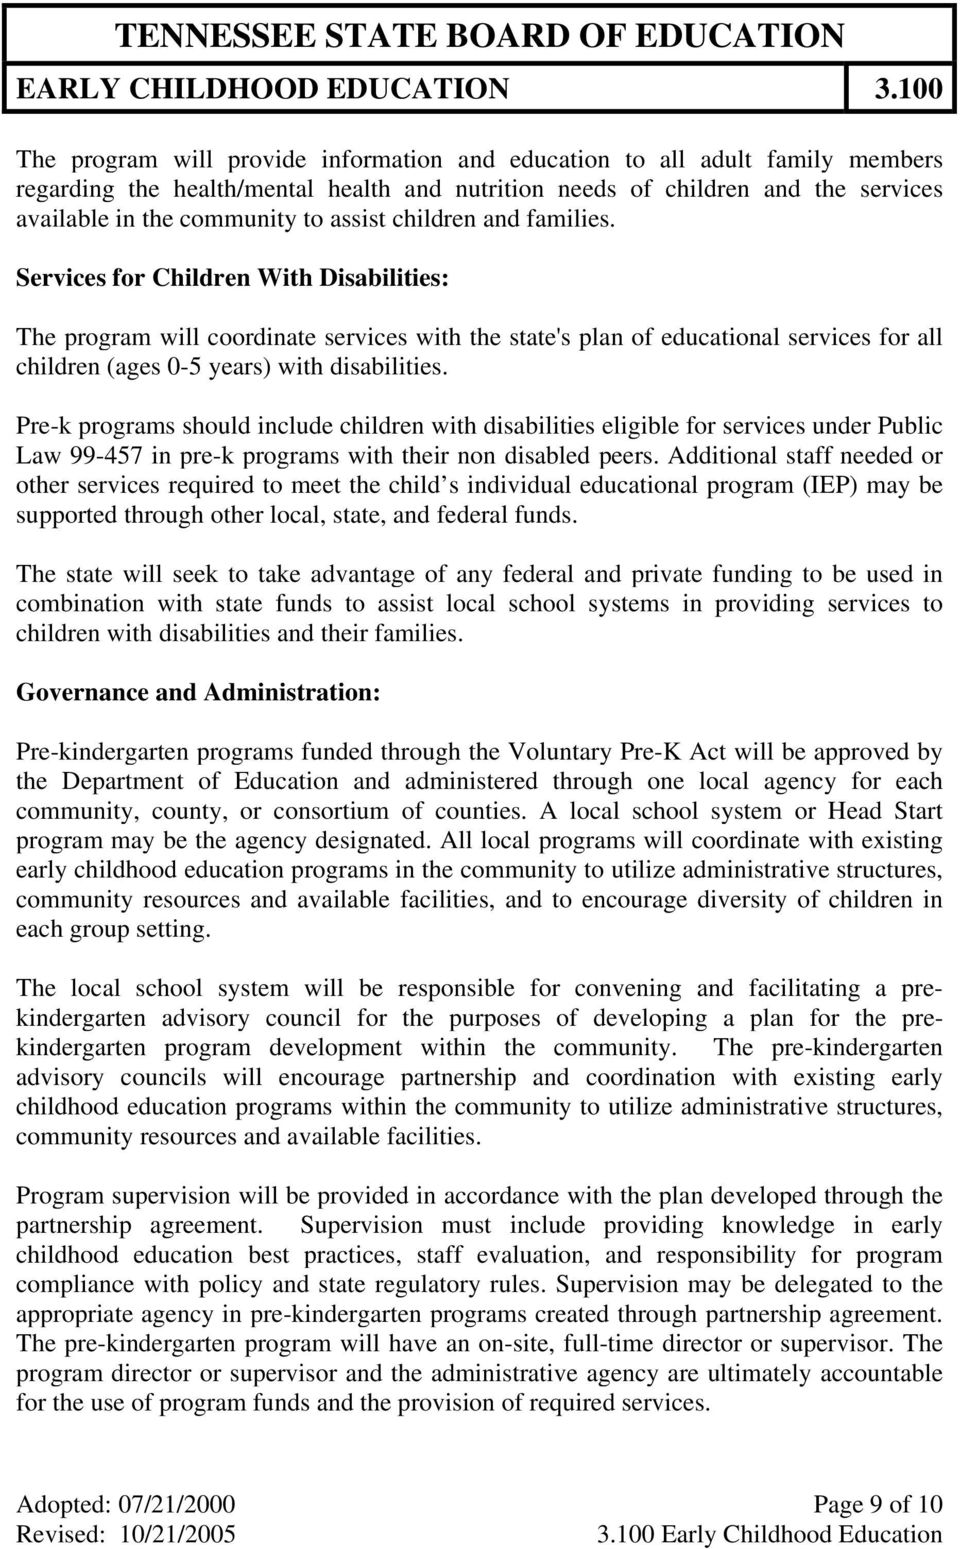 Pre-k programs should include children with disabilities eligible for services under Public Law 99-457 in pre-k programs with their non disabled peers.